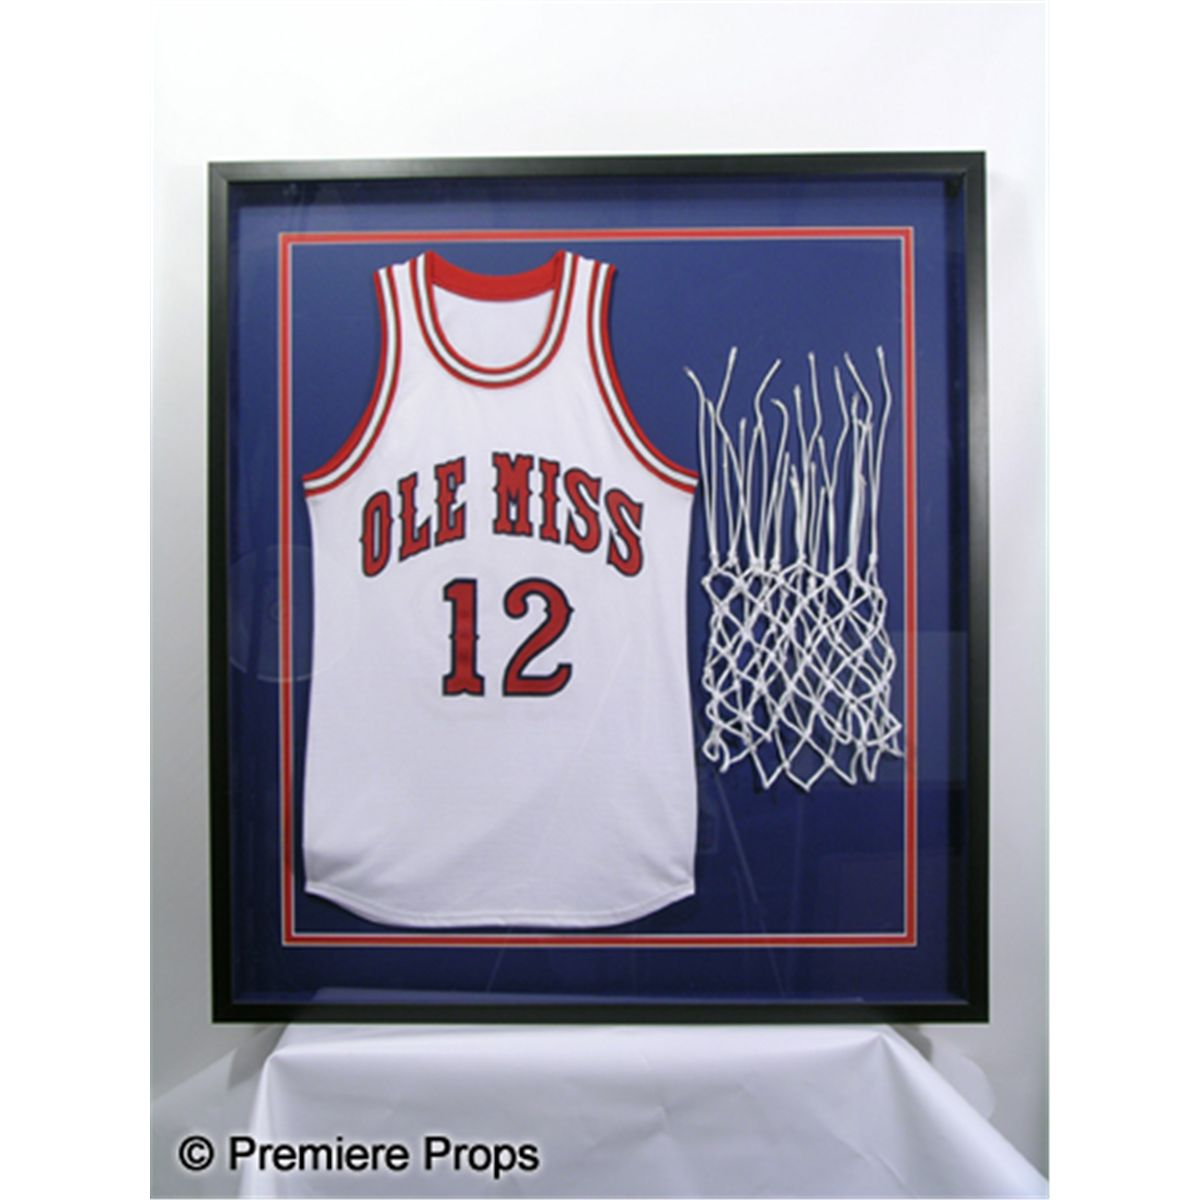 0867c6dad10 The Blind Side Sean's (Tim McGraw) 'Ole Miss' Framed Basketball ...